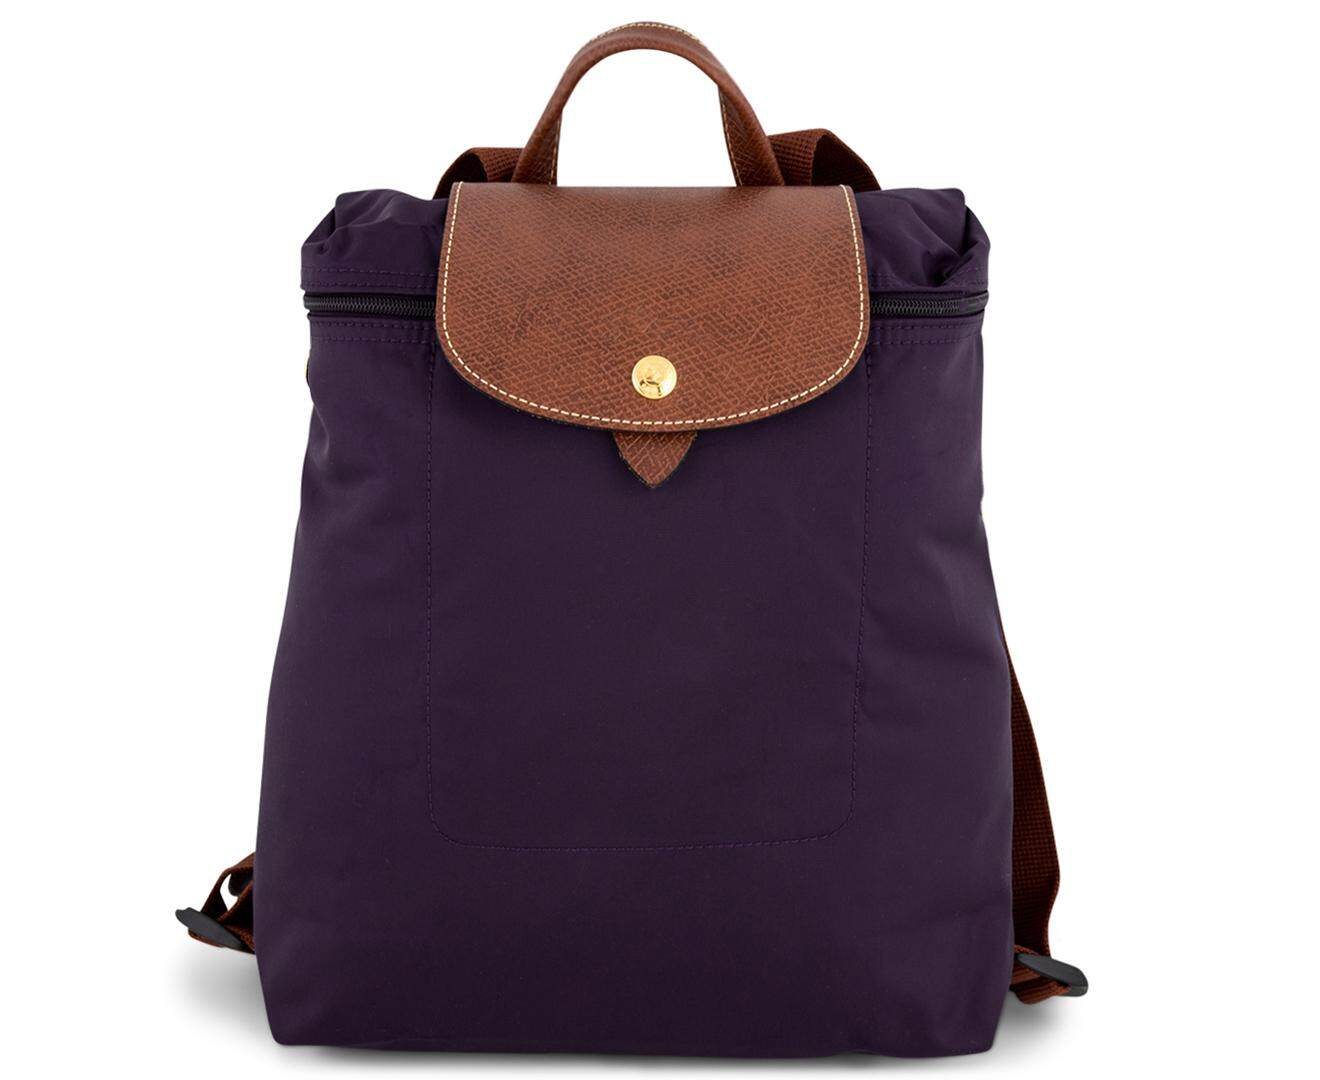 Longchamp Le Pliage Saint Valentin Small Long Handle Slh Pink Lc002 Neo Medium Tote Backpack Bilberry